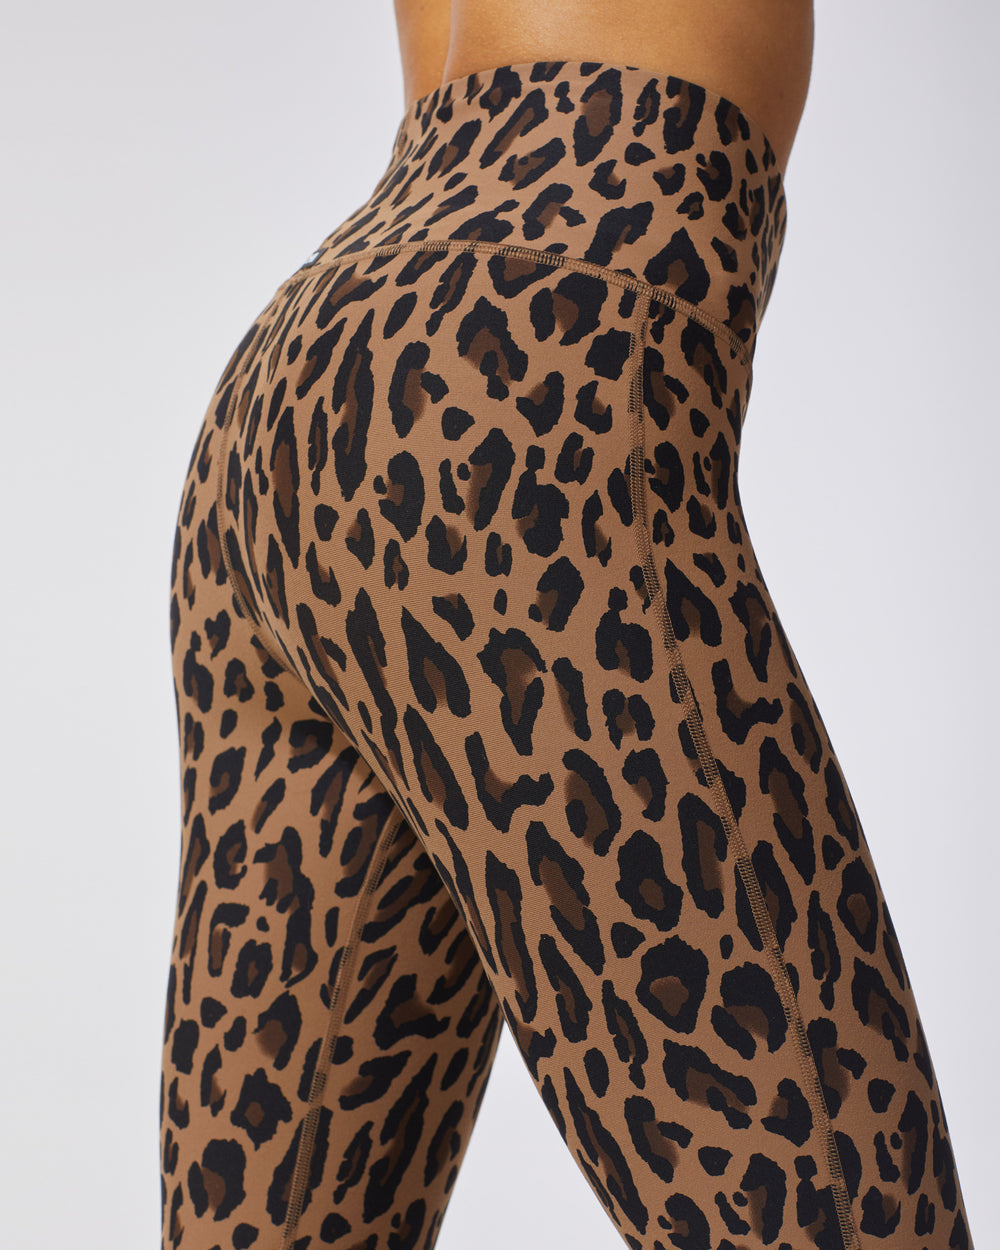 Instinct Leopard Print Legging - Brown